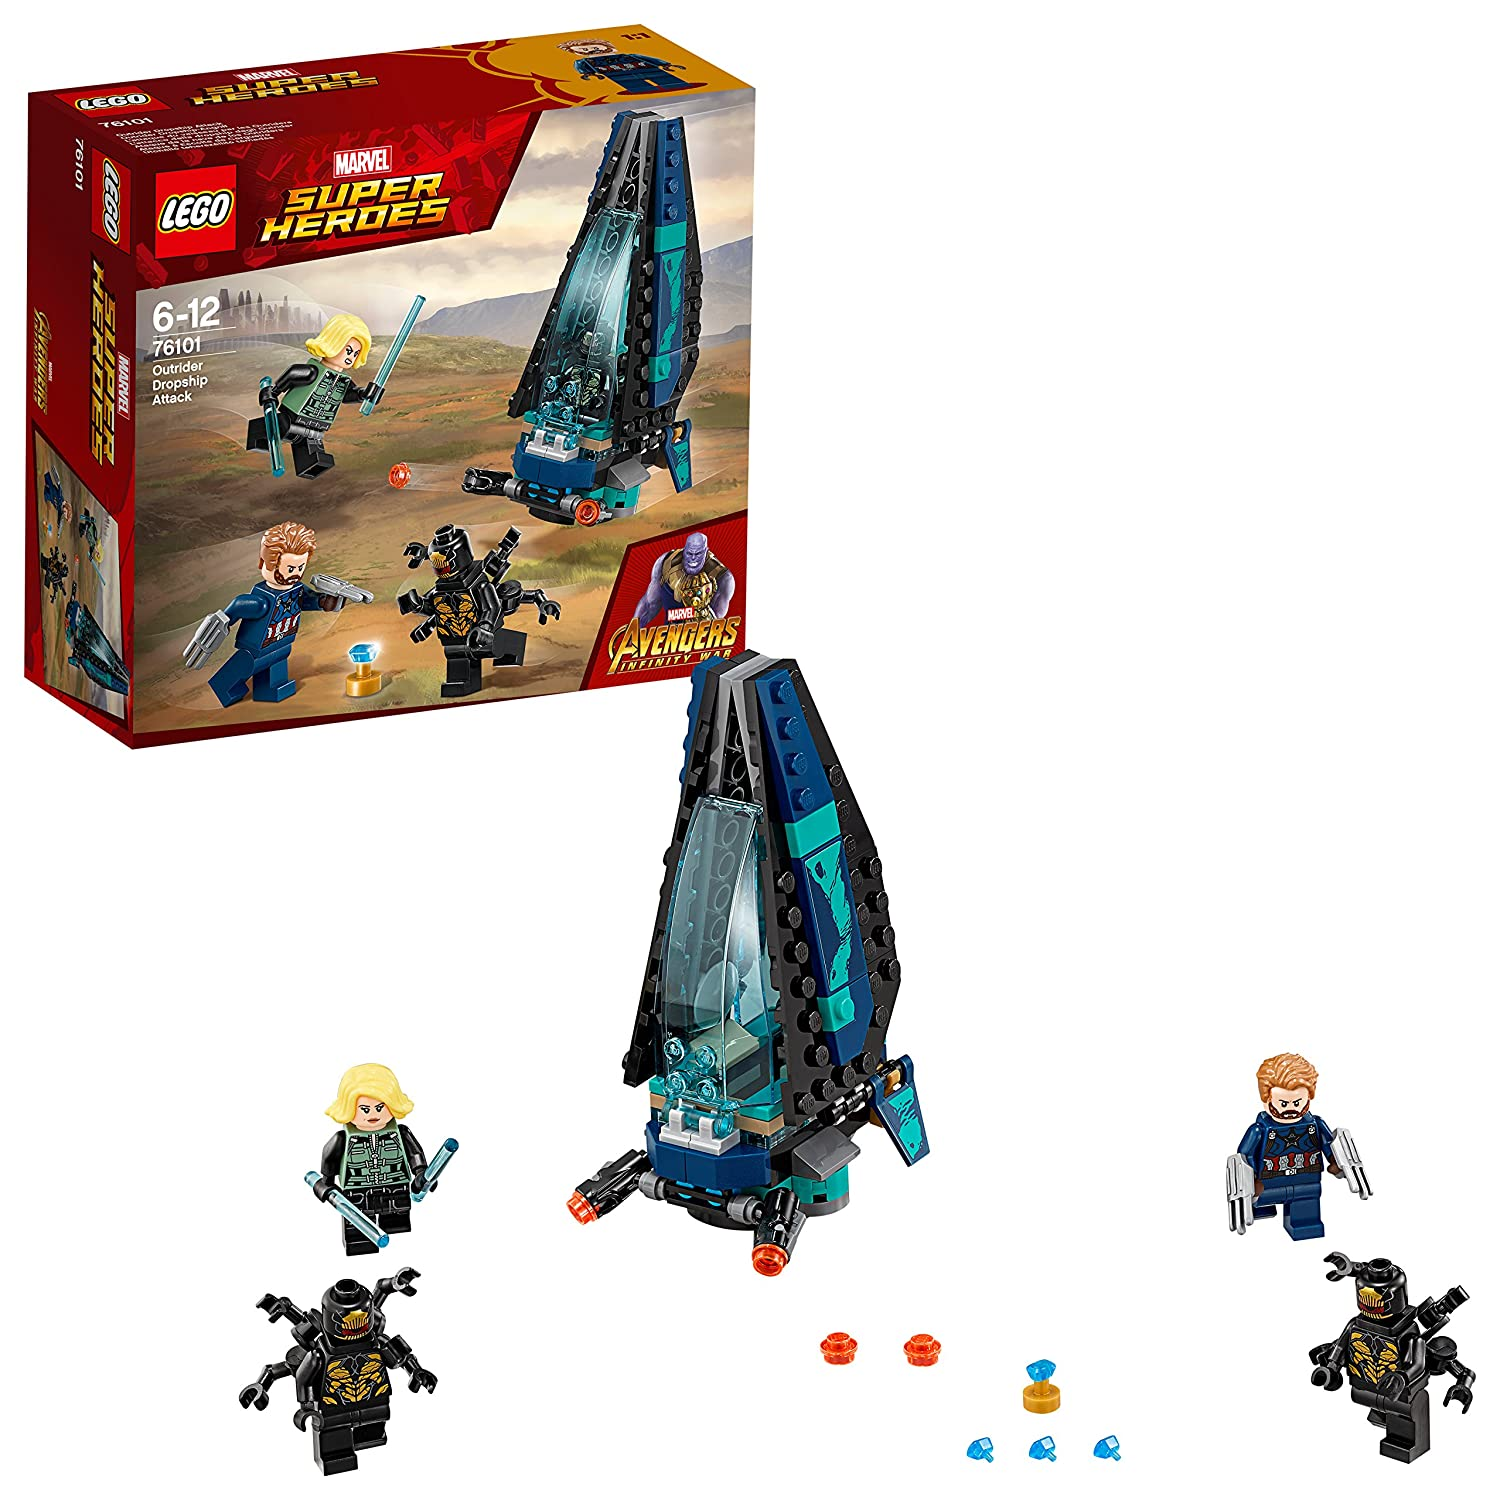 Lego 'Marvel Super Heroes - Outrider Dropship Attack' Set - 76101 Captain America Superhero Toys for Kids